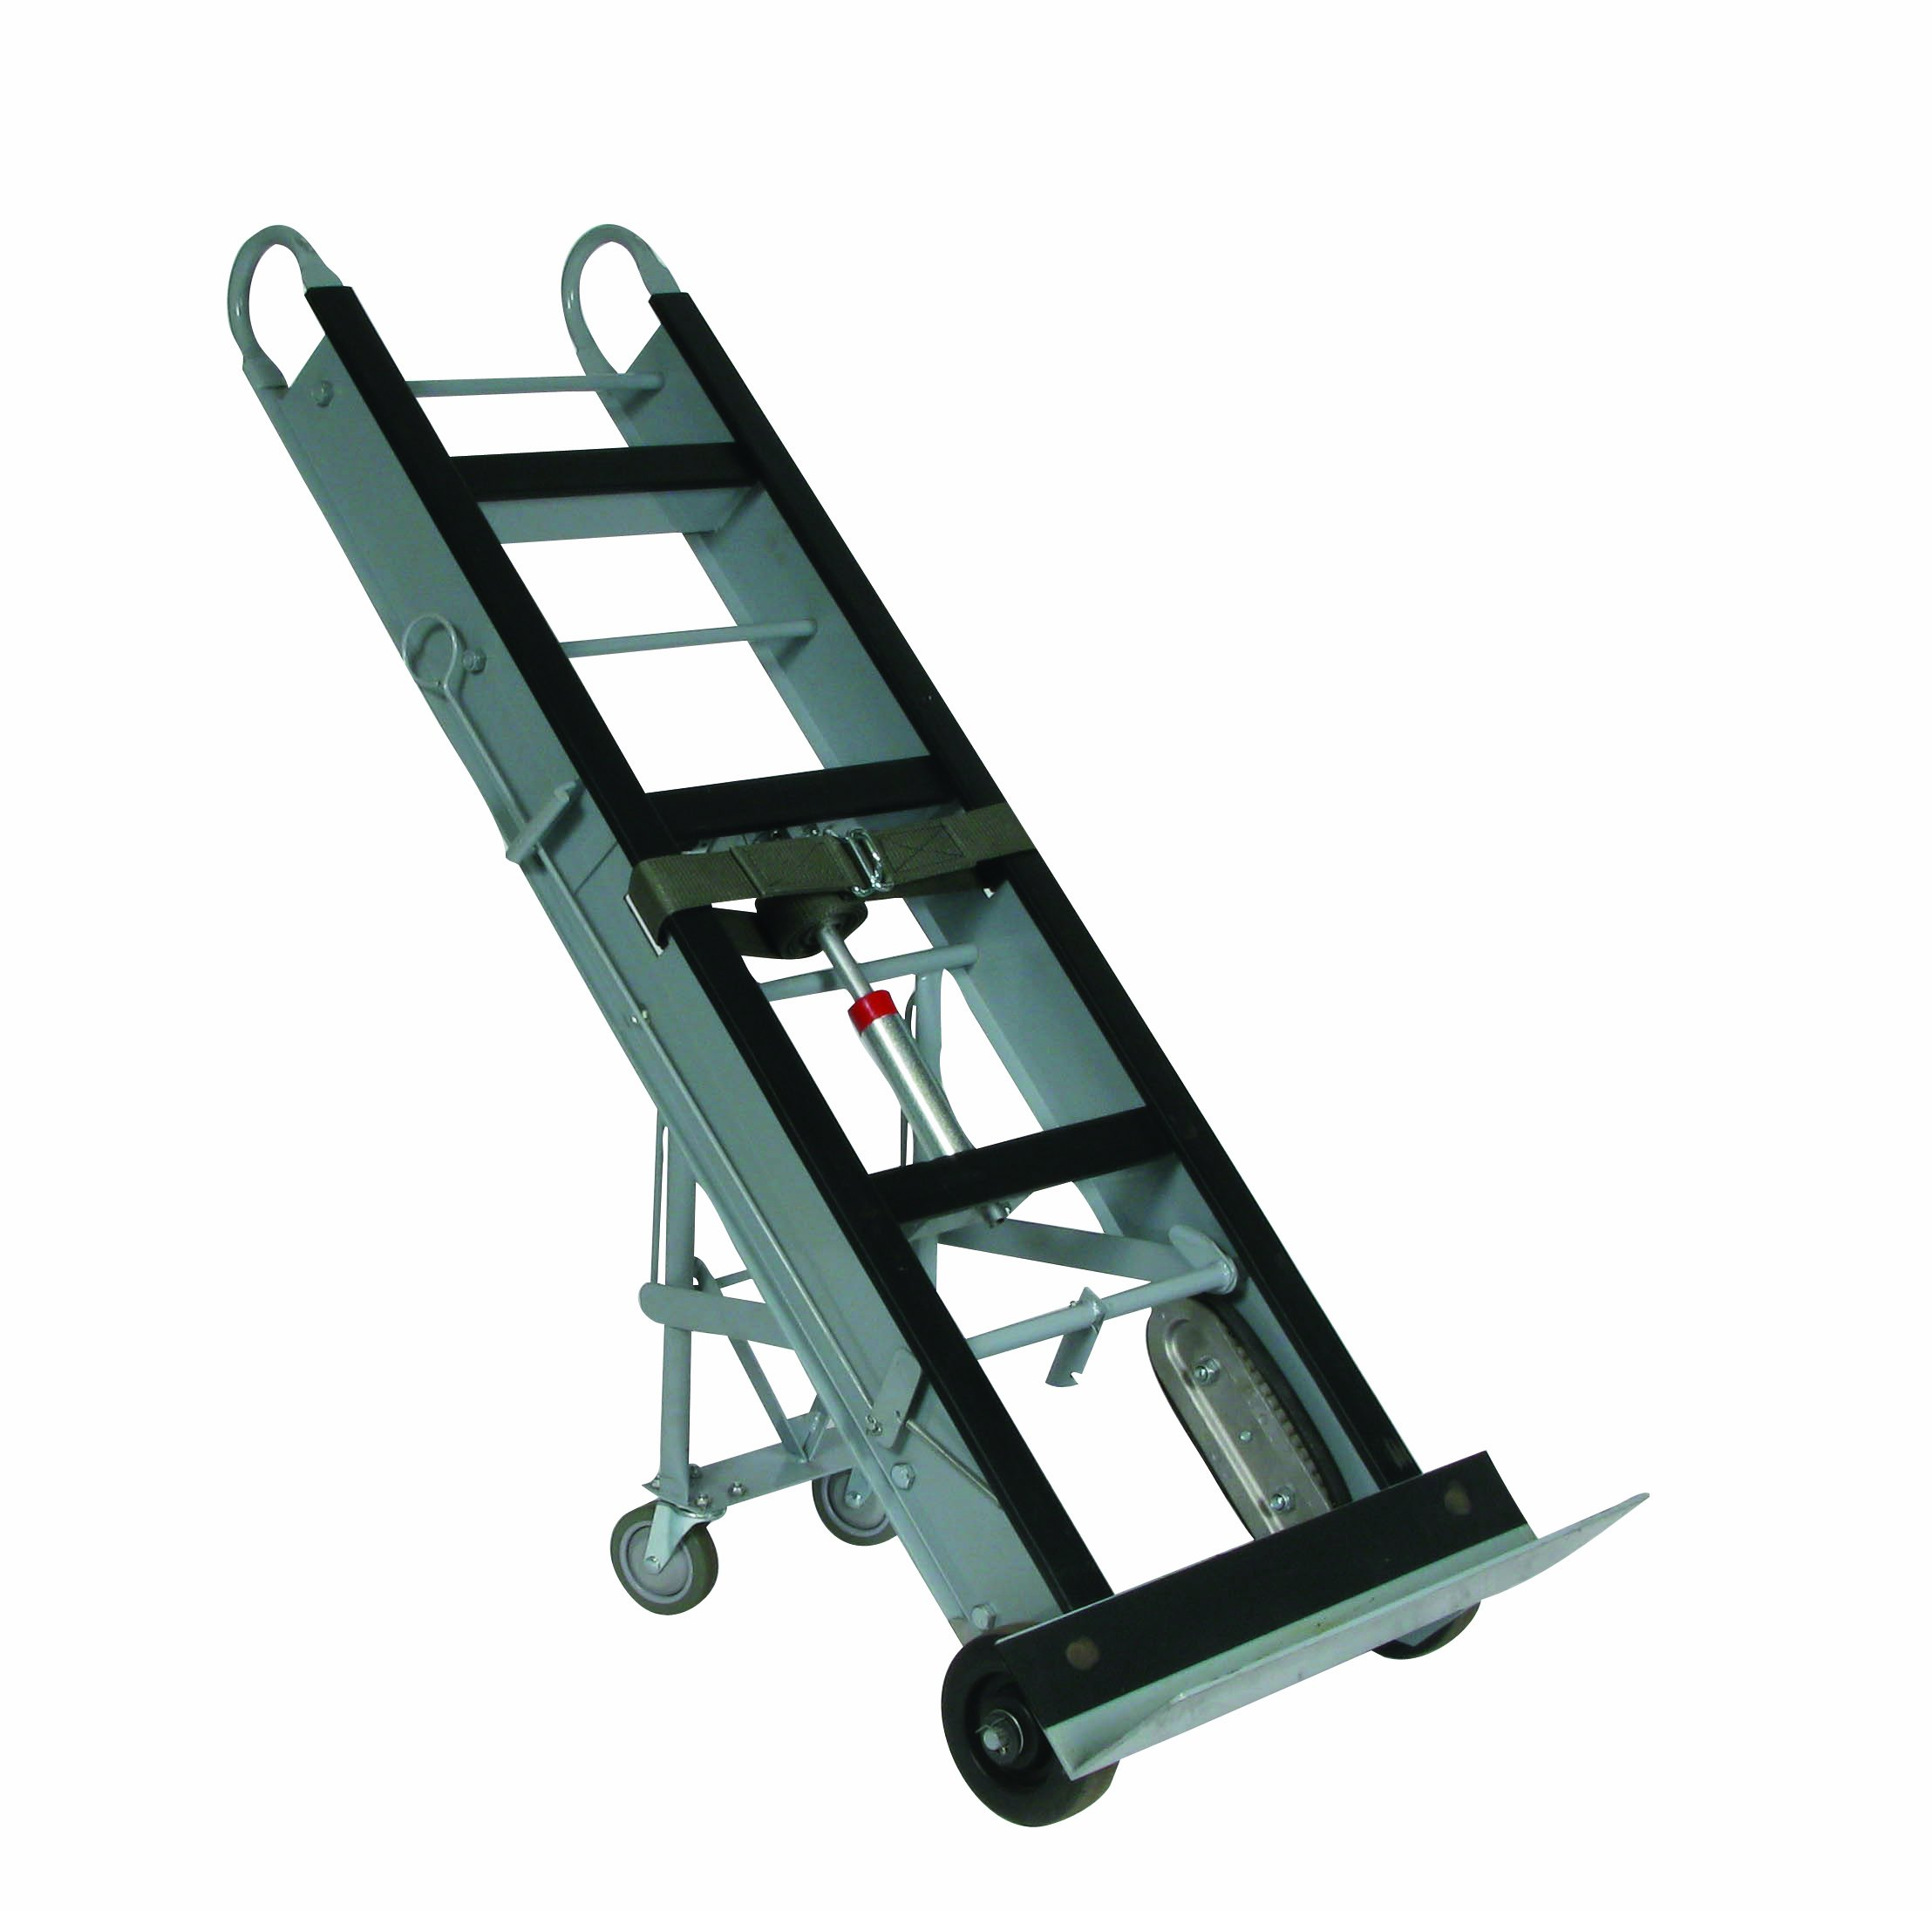 Wesco 272412 Aluminum Economical Appliance and Vending Truck with Kick-Out Design and Auto Rewind Single Ratchet, Moldon Rubber Wheels, 550-lb. Load Capacity, 61'' Height, 12'' Length x 24'' Width